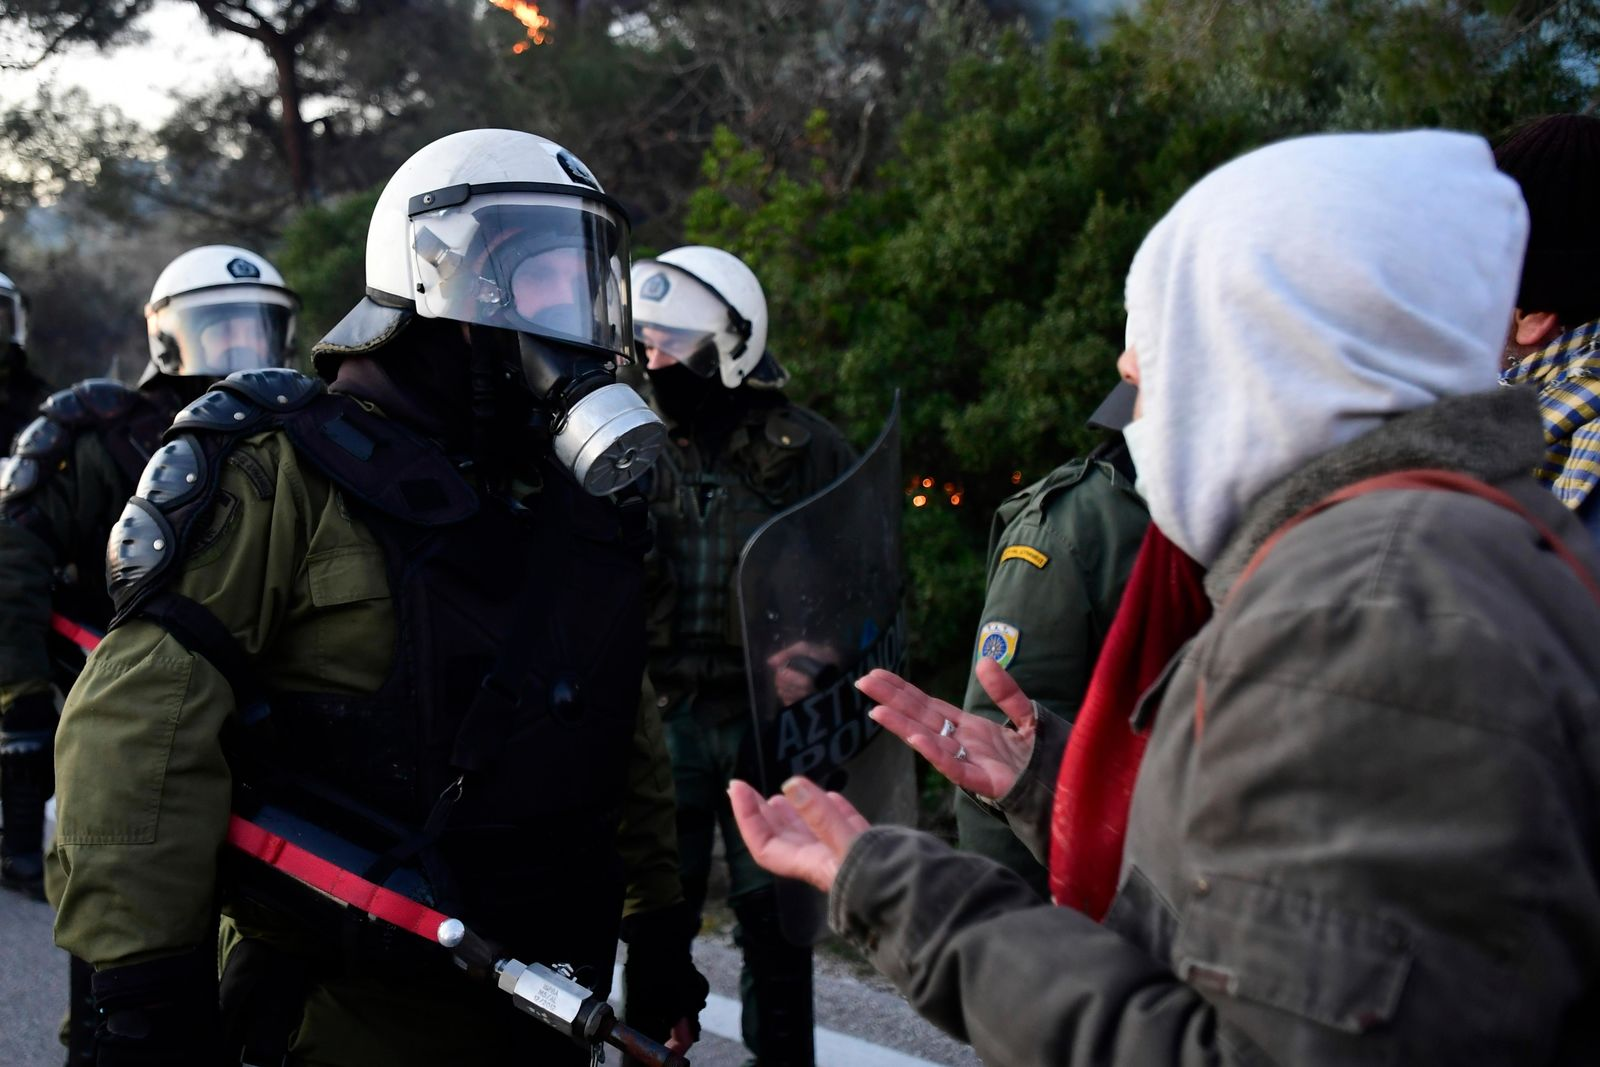 A protester reacts as riot police block a road in Karava village near the area where the government plans to build a new migrant detention center, on the northeastern Aegean island of Lesbos, Greece, early Tuesday, Feb. 25, 2020.{ } (AP Photo/Michael Varaklas)